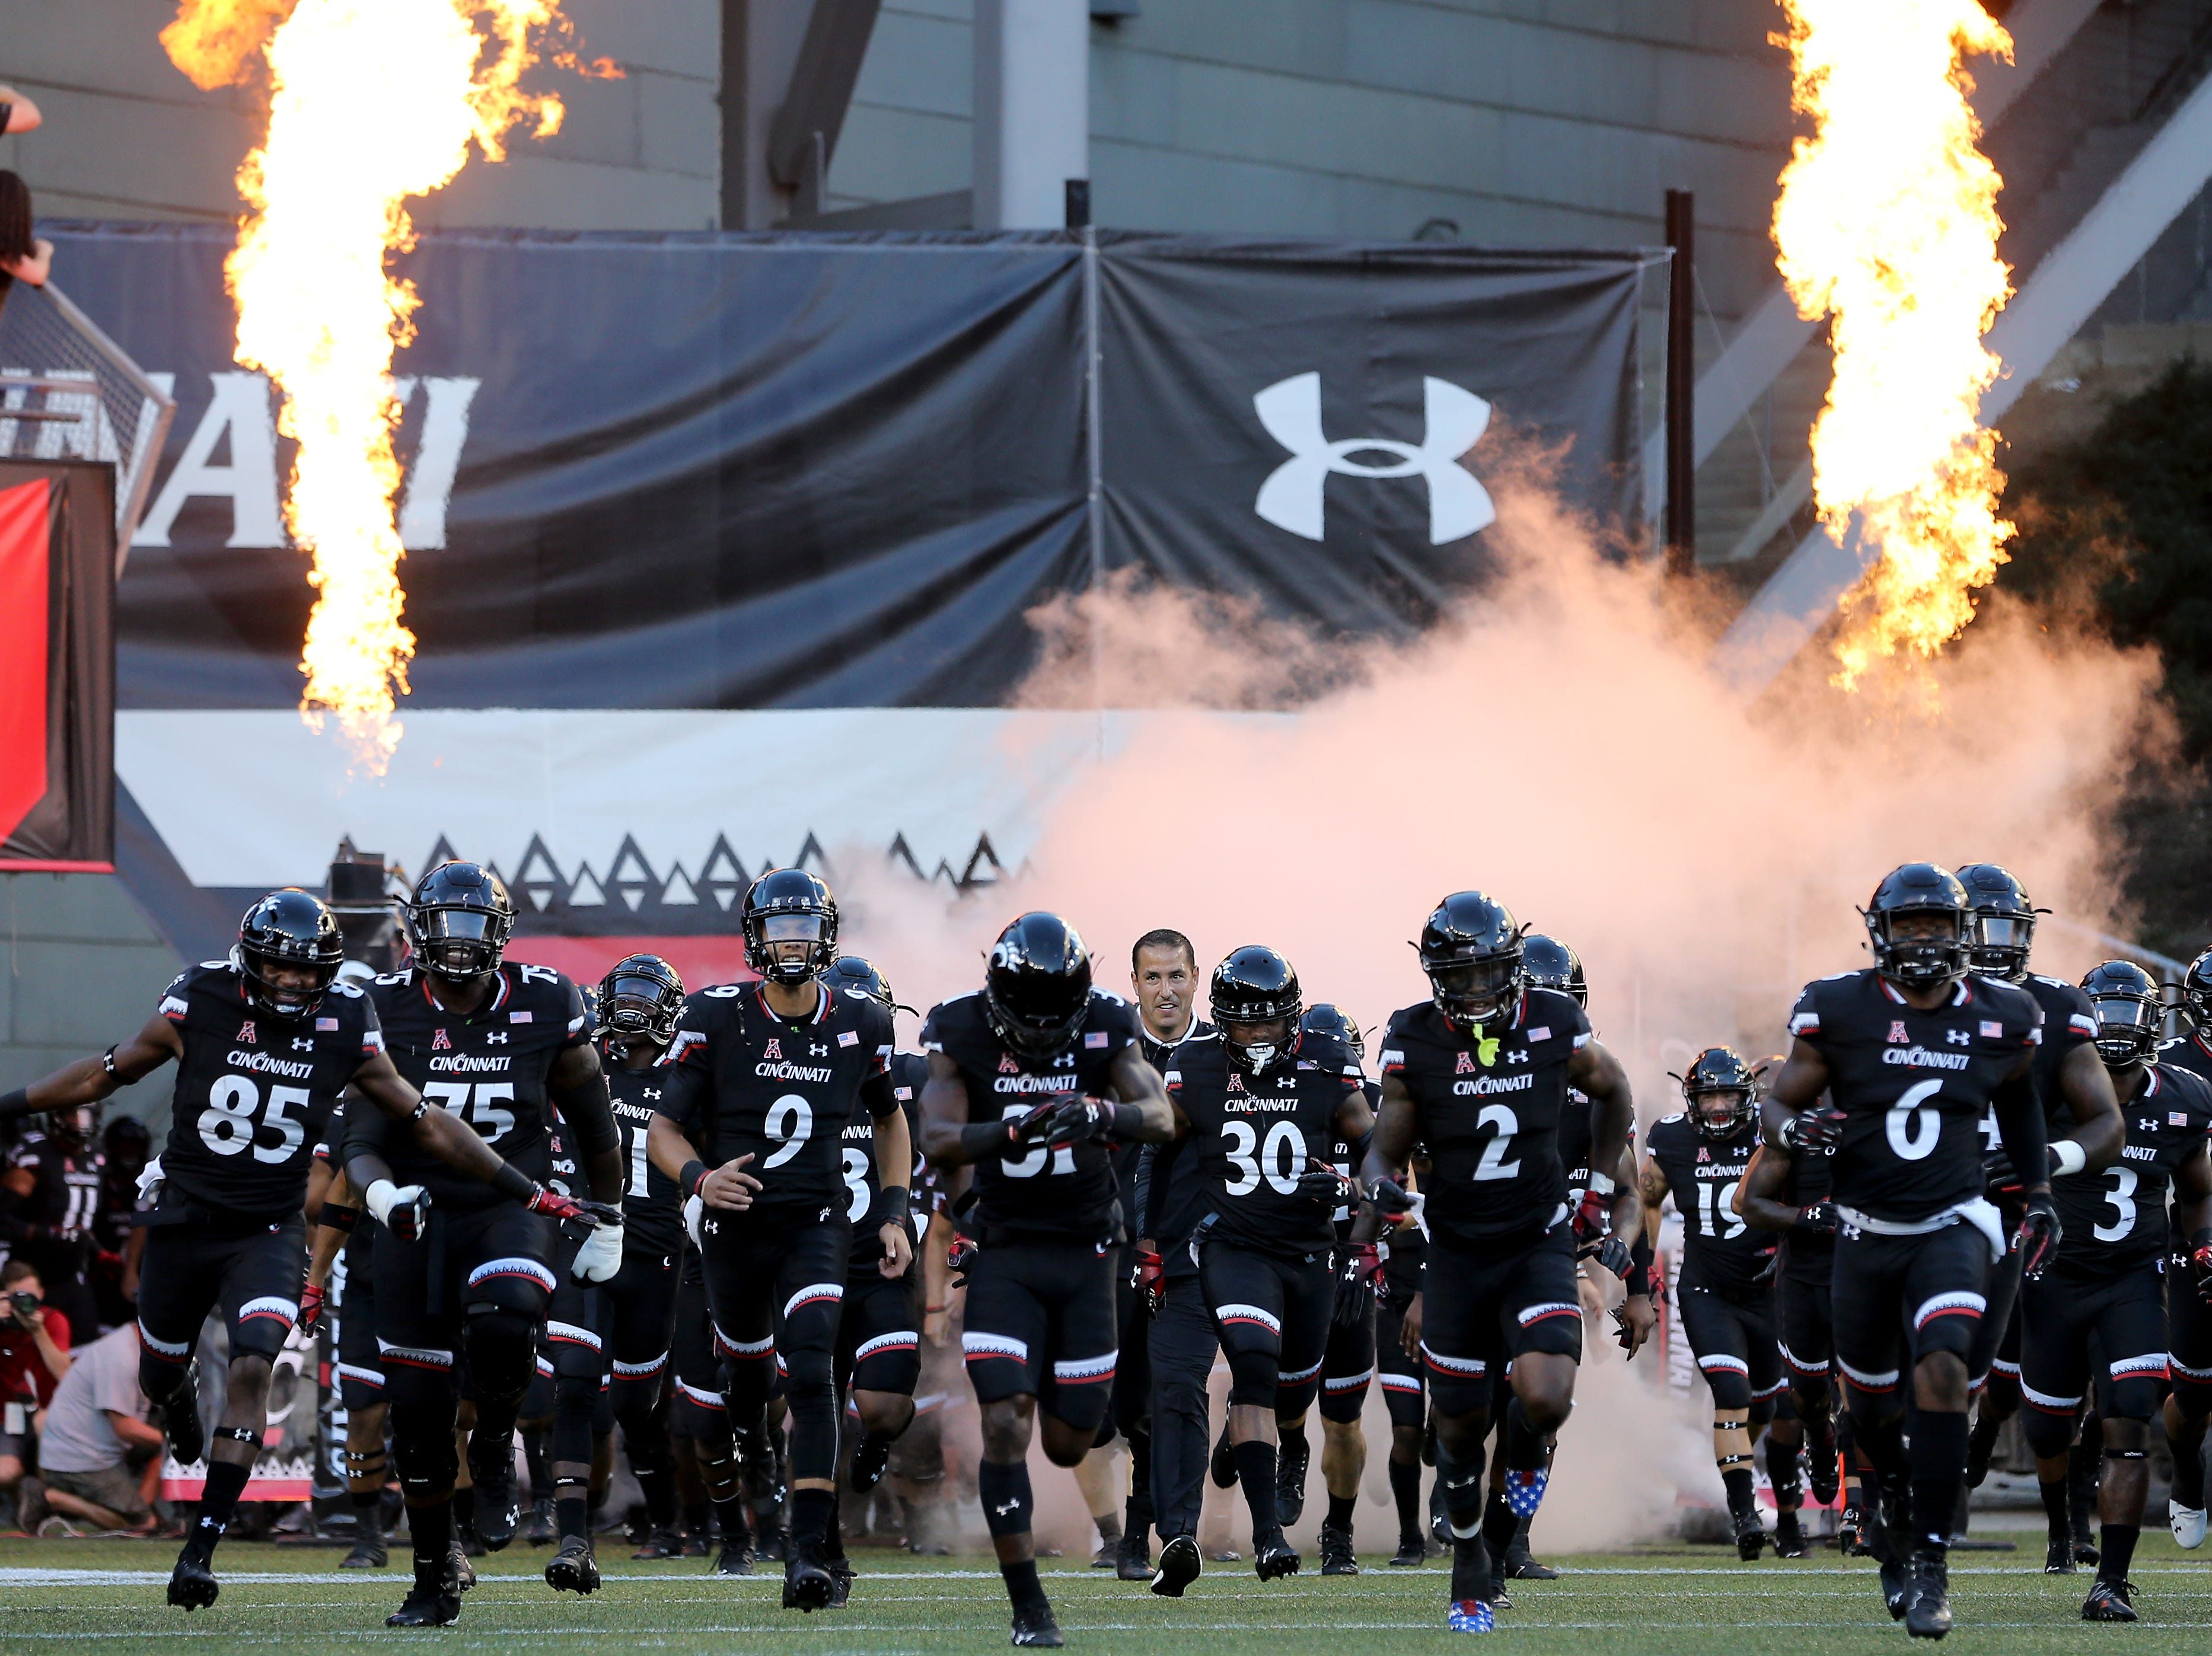 The Cincinnati Bearcats take the field before the a college football game between the Cincinnati Bearcats and the Alabama A&M Bulldogs, Saturday, Sept. 15, 2018, at Nippert Stadium in Cincinnati.